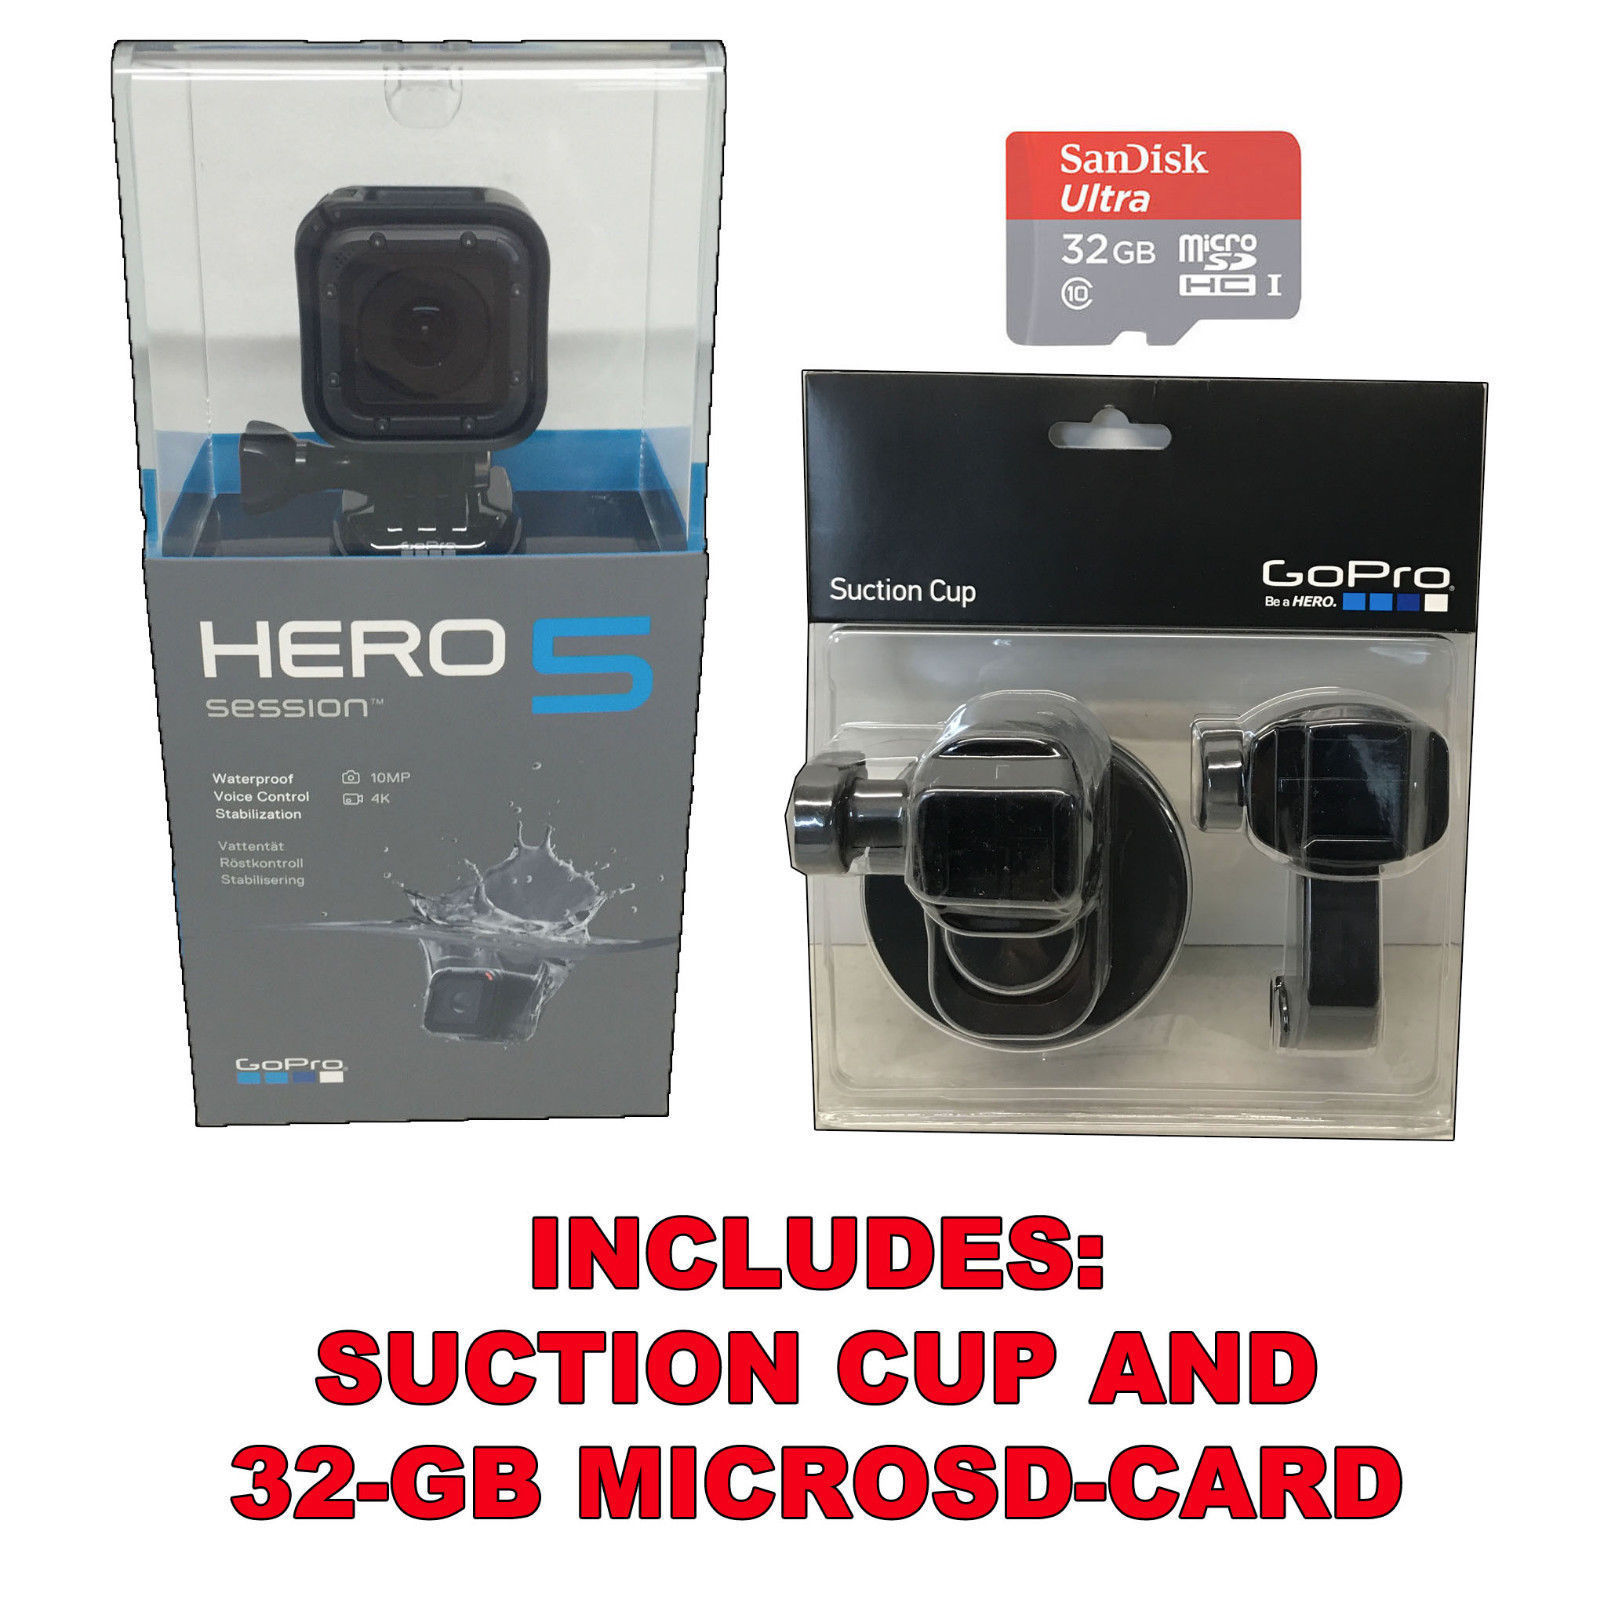 GoPro Hero5 Session 4K HD, Wi-Fi Water resistant Digital camera, 32GB SD Card + Suction Cup